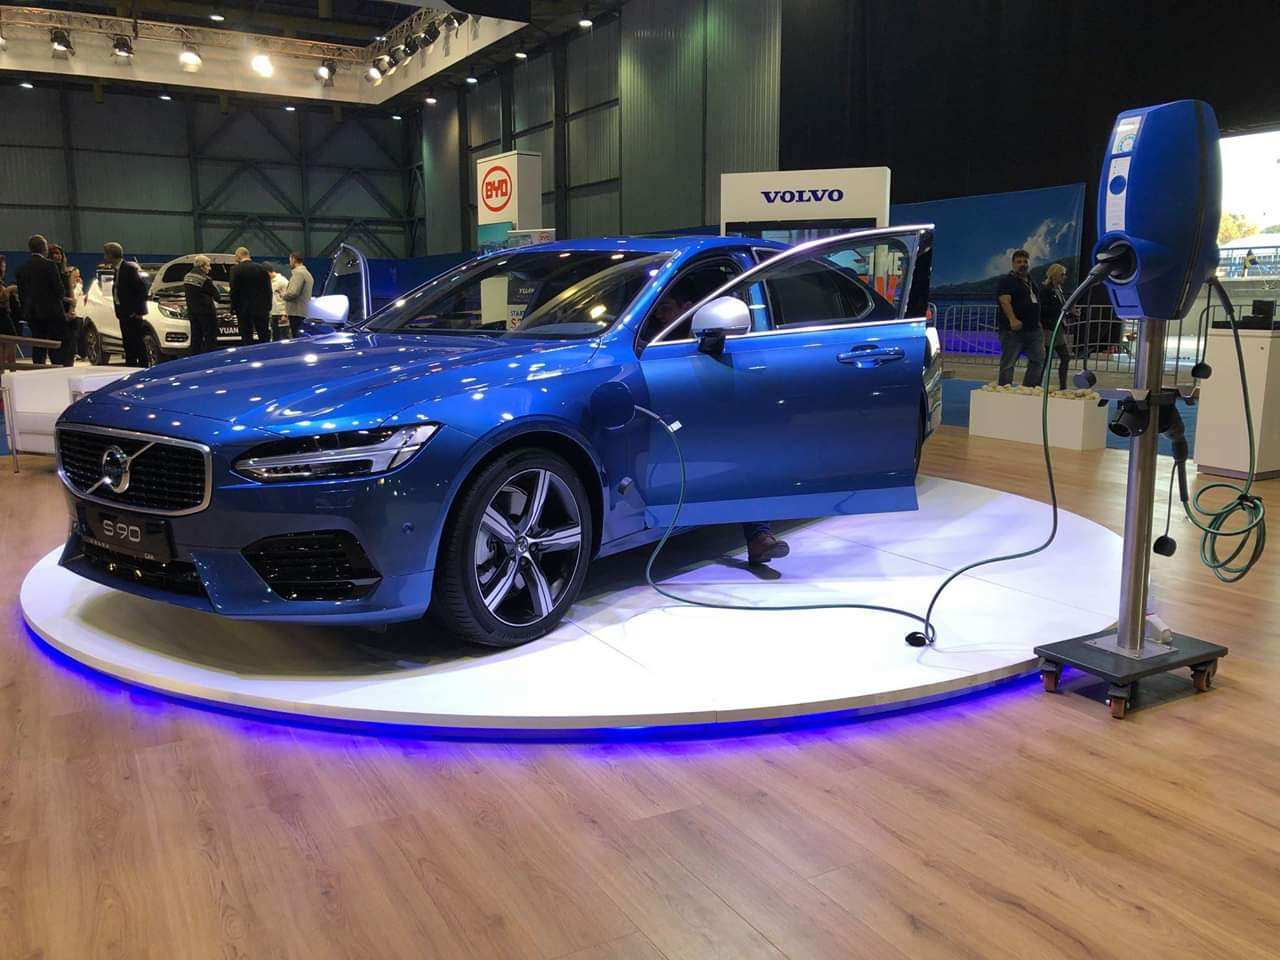 64 All New Volvo S Safety Goal No Deaths By 2020 Exterior And Interior